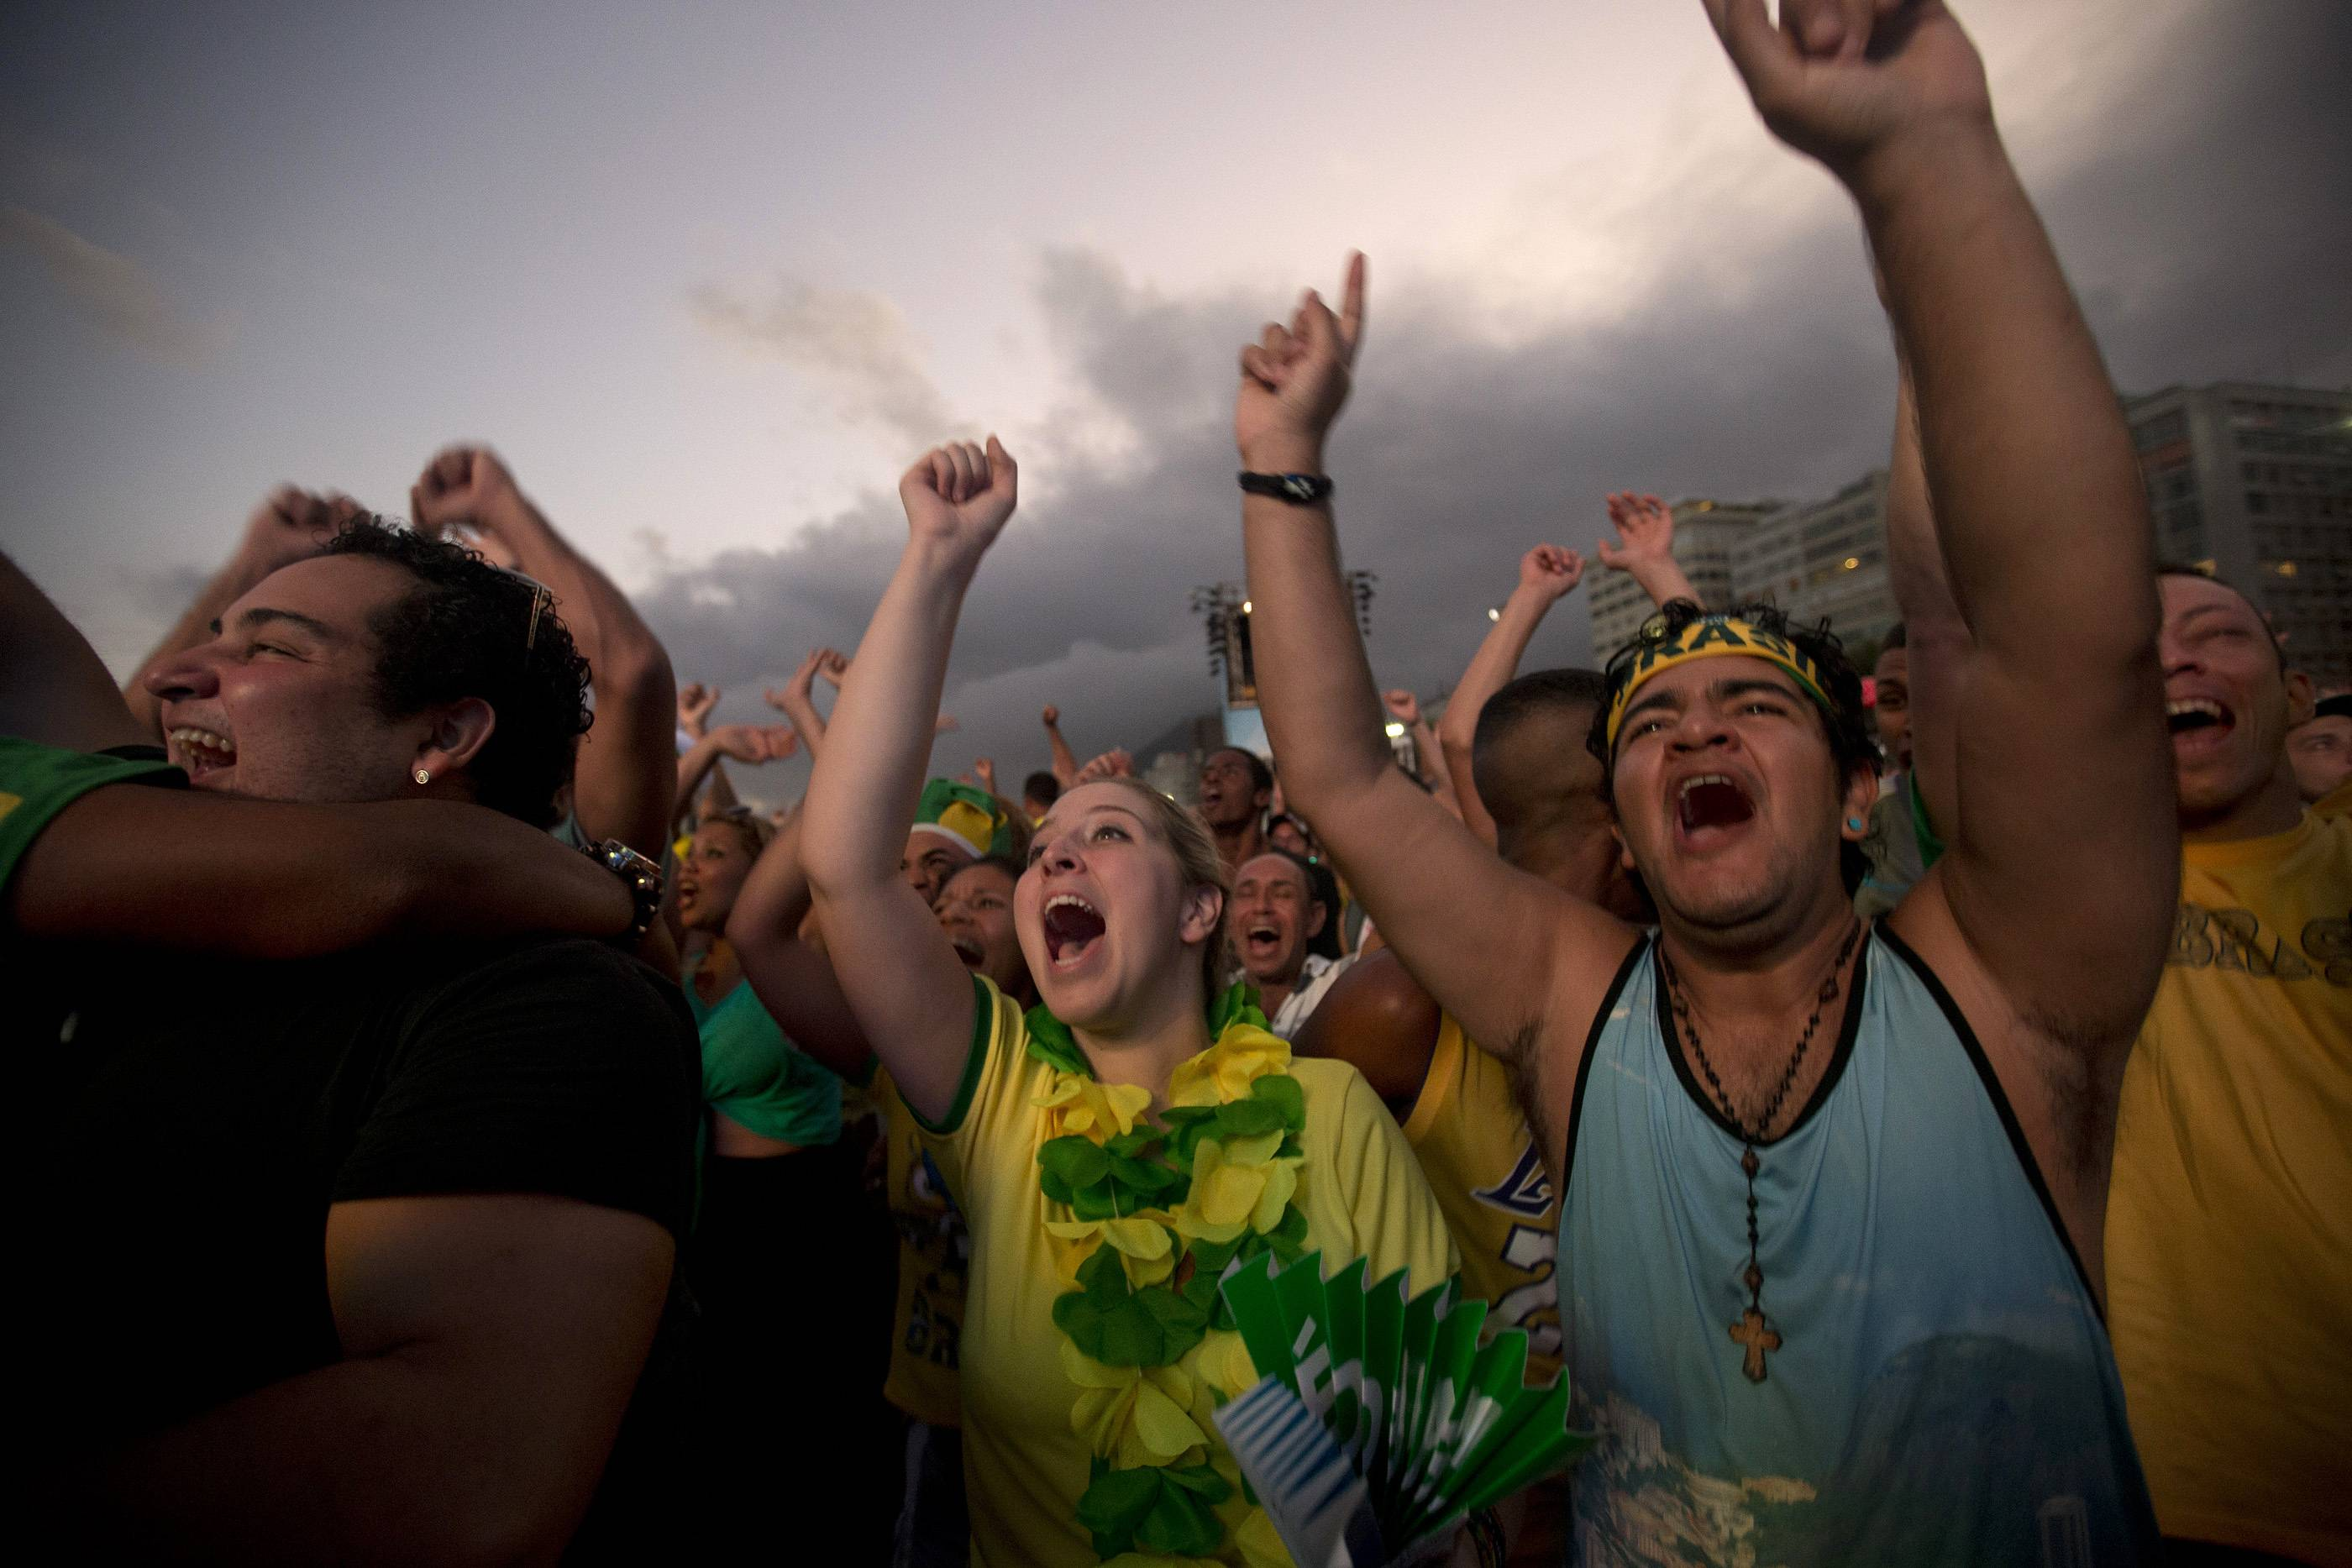 Brazil soccer fans celebrate their team's goal against Croatia as they watch the game inside the FIFA Fan Fest area on Copacabana beach in Rio de Janeiro.